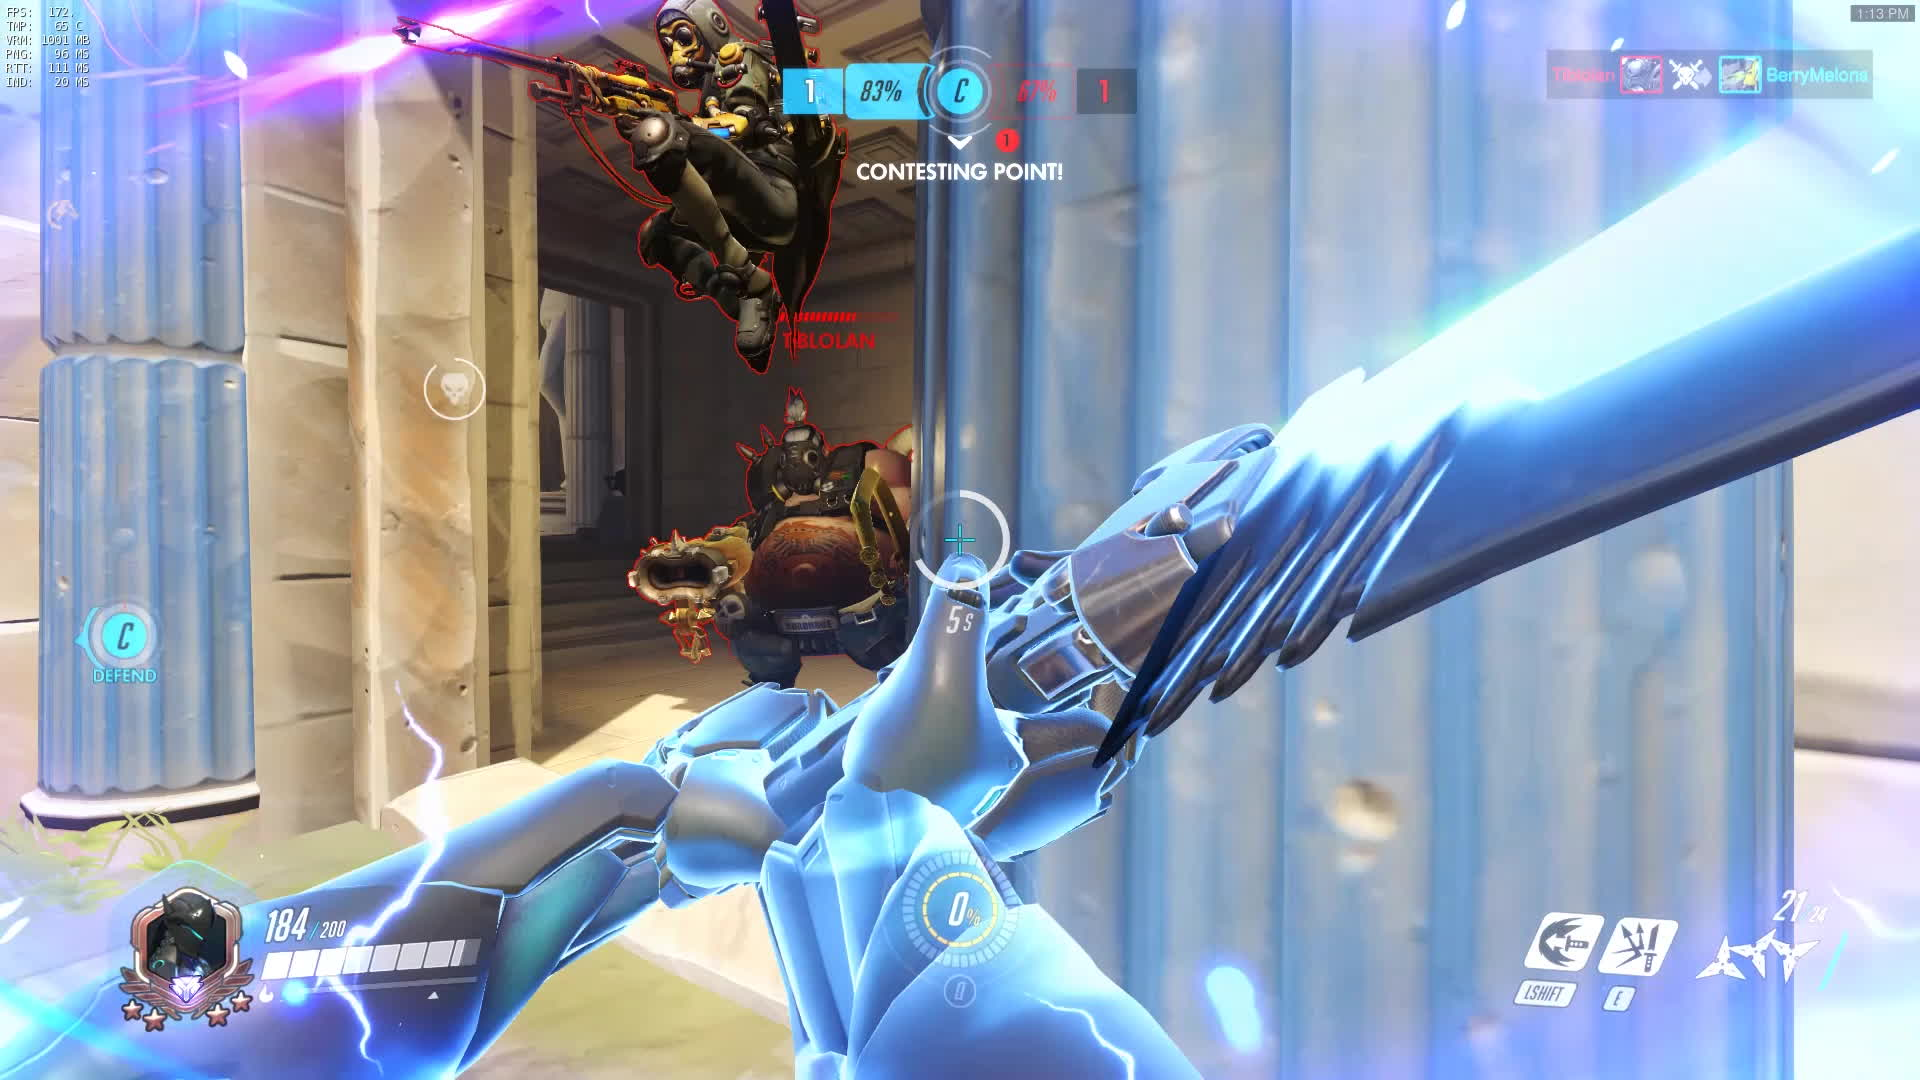 competitiveoverwatch, 6 man genji ult + dash resets GIFs